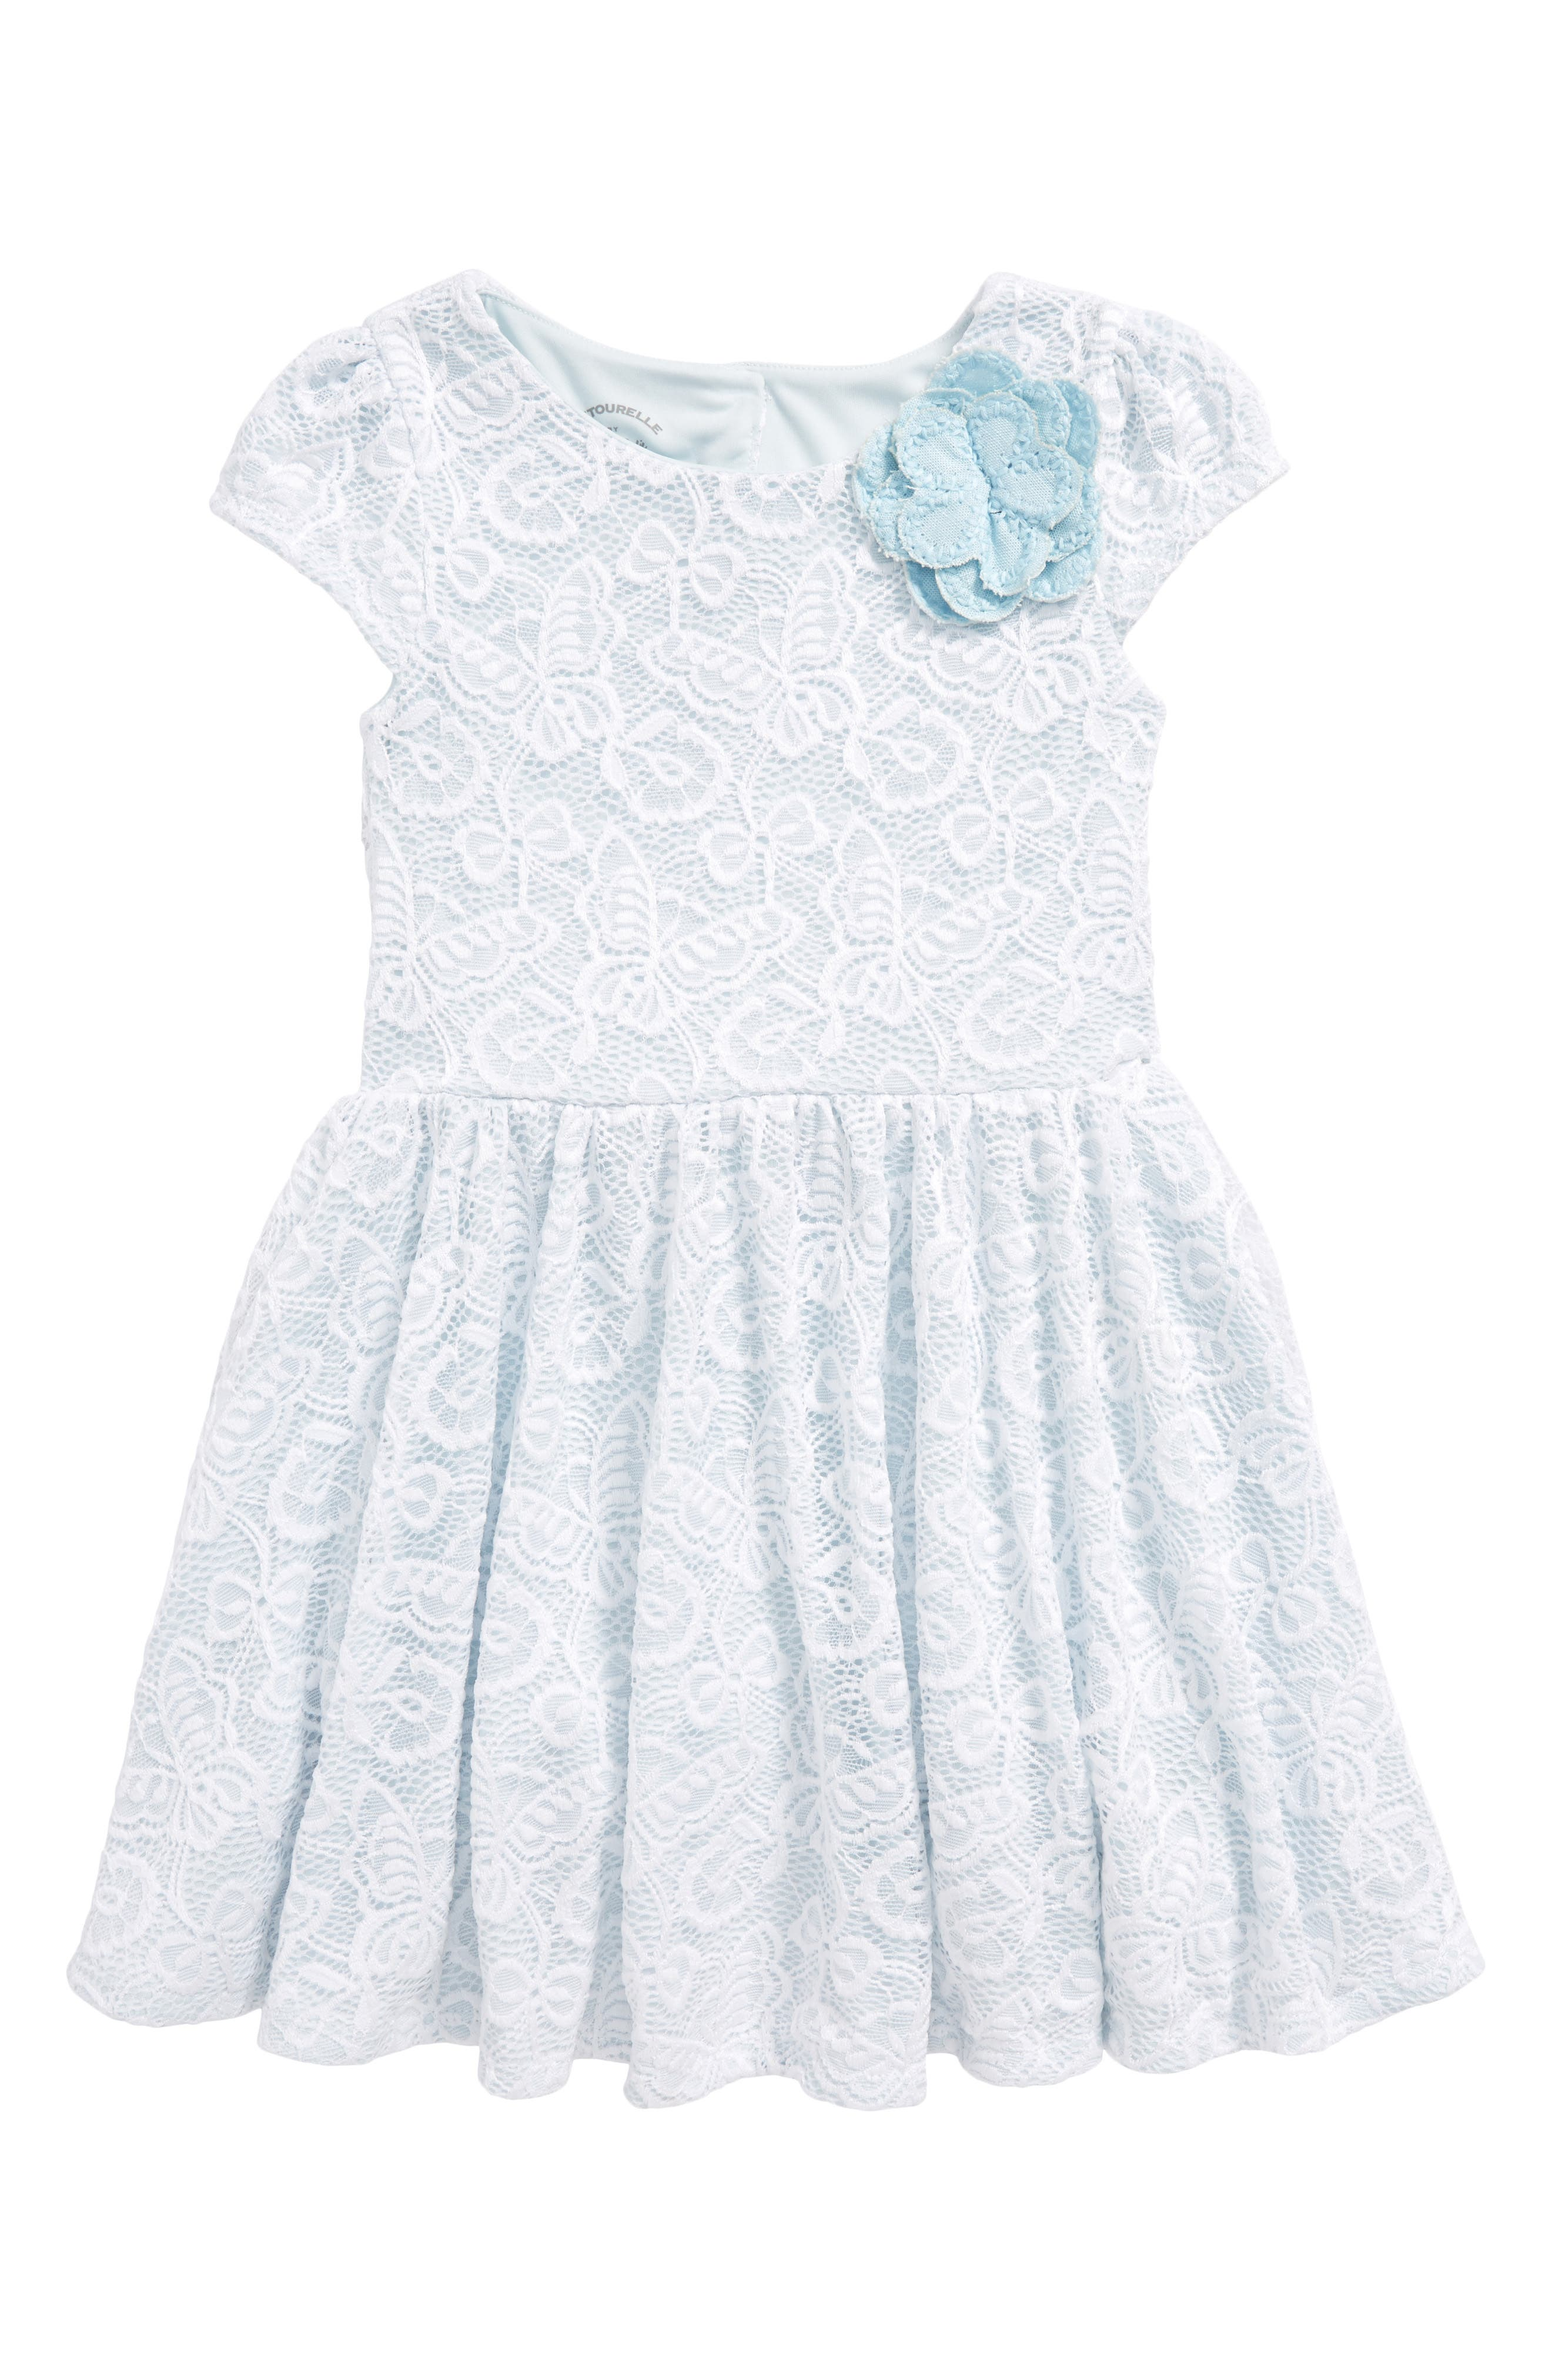 Pastourelle by Pippa and Julie Lace Skater Dress,                         Main,                         color, White